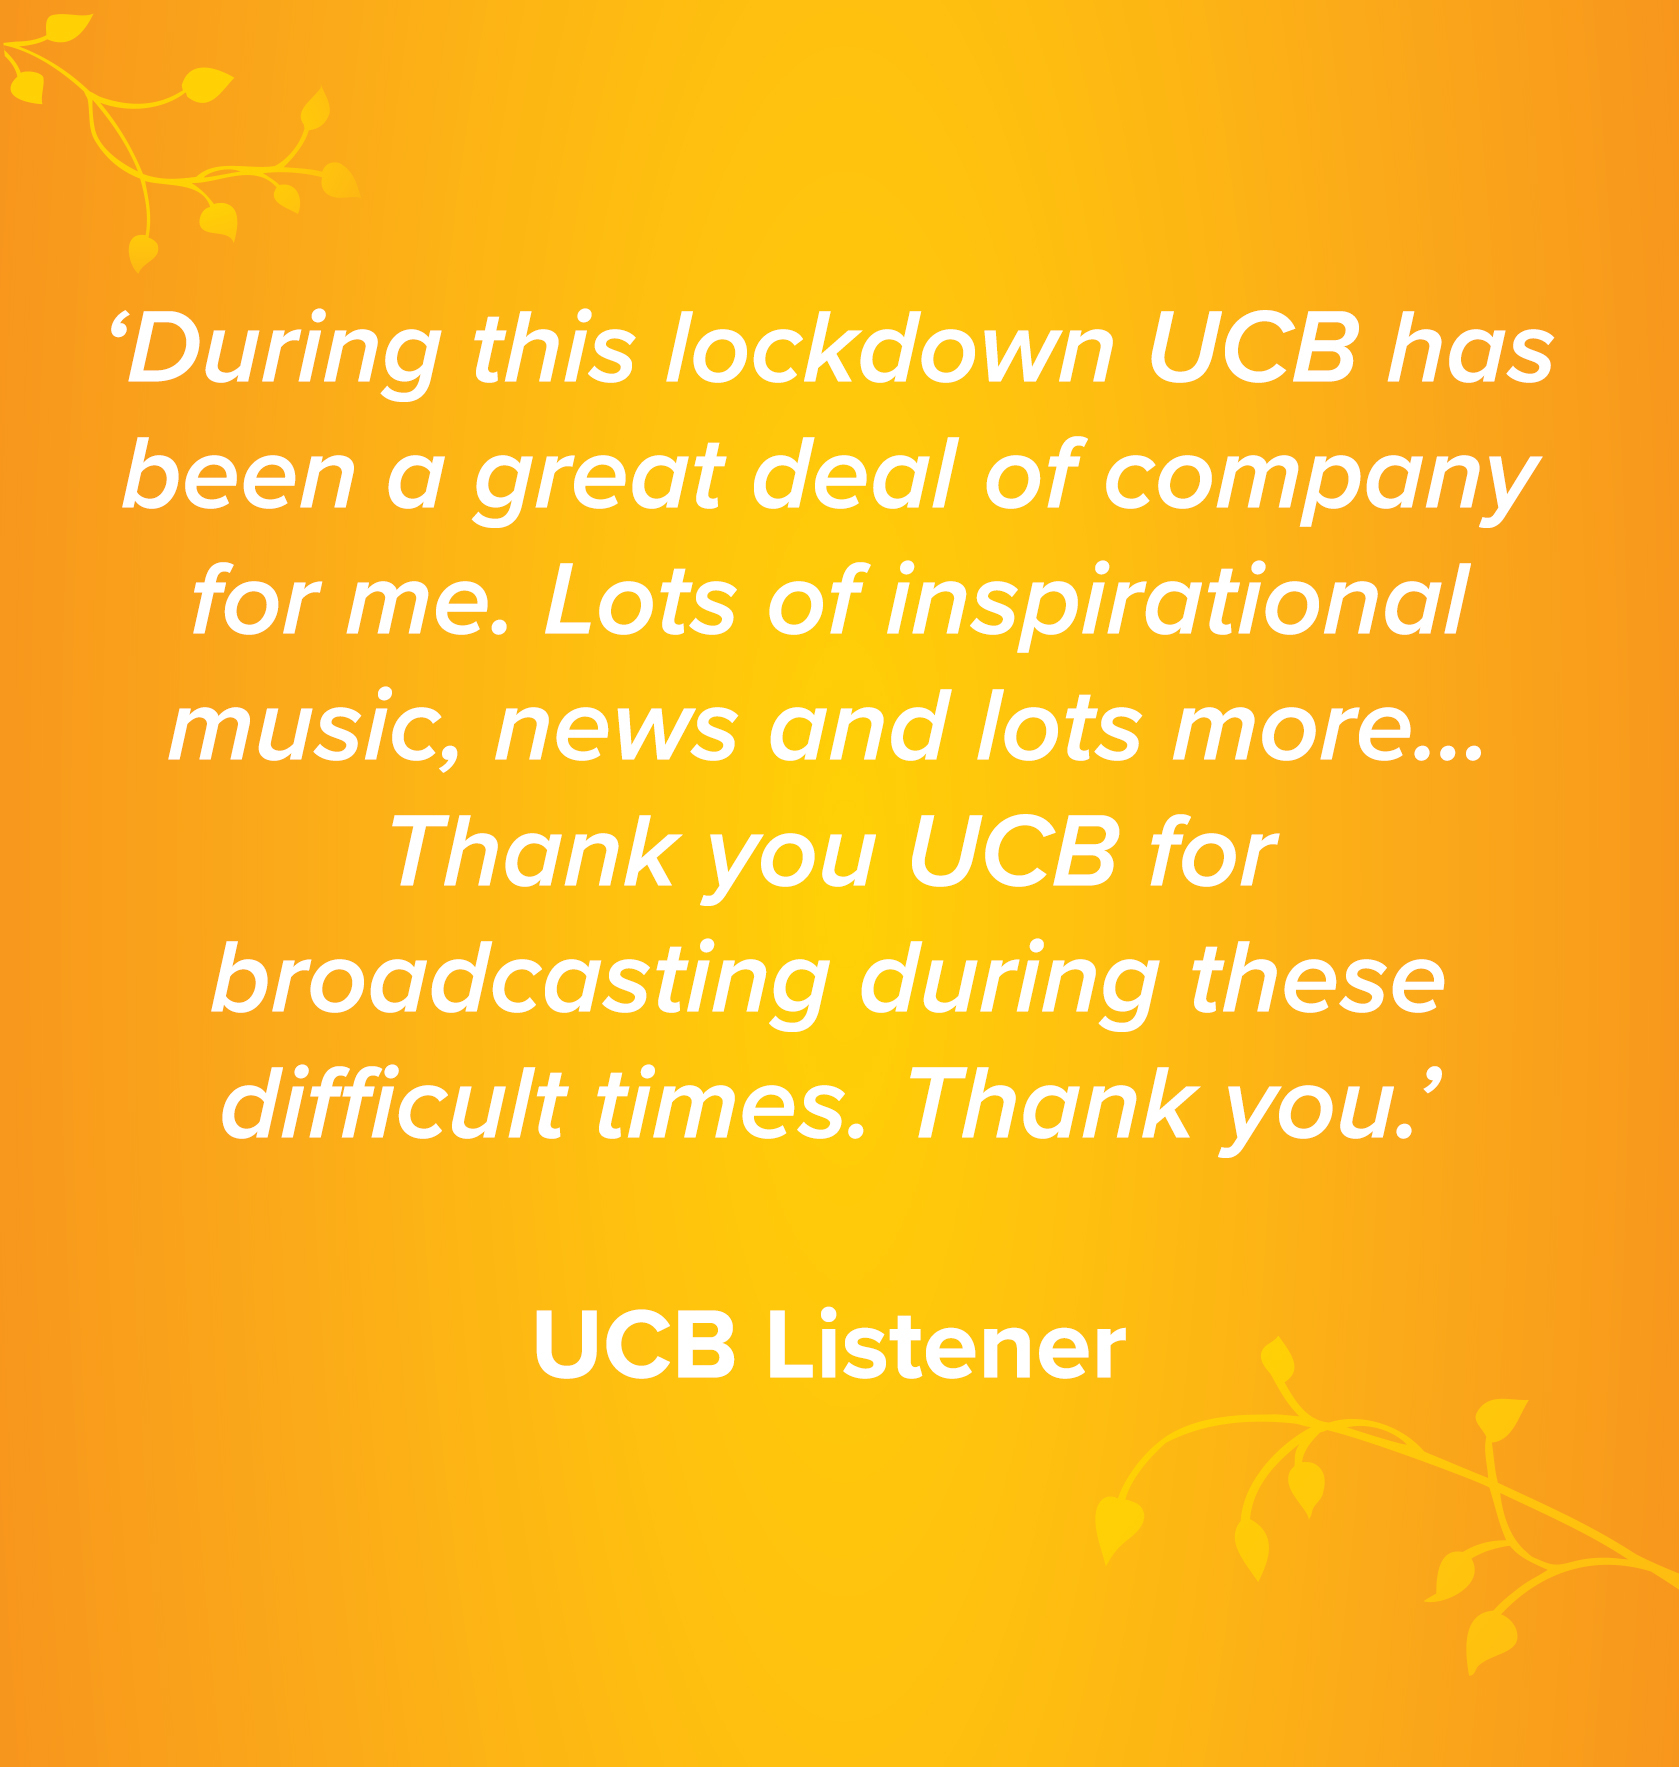 'During this lockdown UCB has been a great deal of company for me. Lots of inspirational music, news and lots more… Thank you UCB for broadcasting during these difficult times. Thank you.' UCB Listener